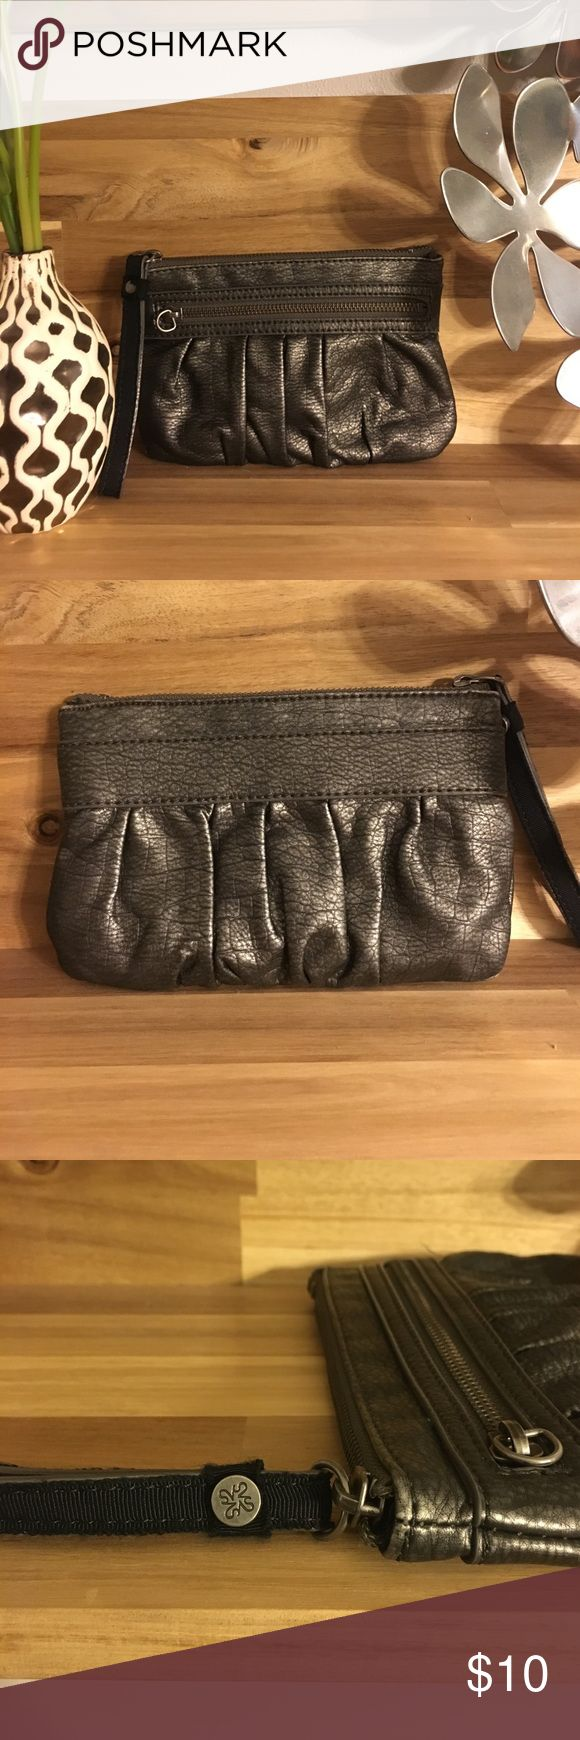 🆕 Simply Vera metallic wristlet Perfect condition both inside and out! Simply Vera Vera Wang Bags Clutches & Wristlets